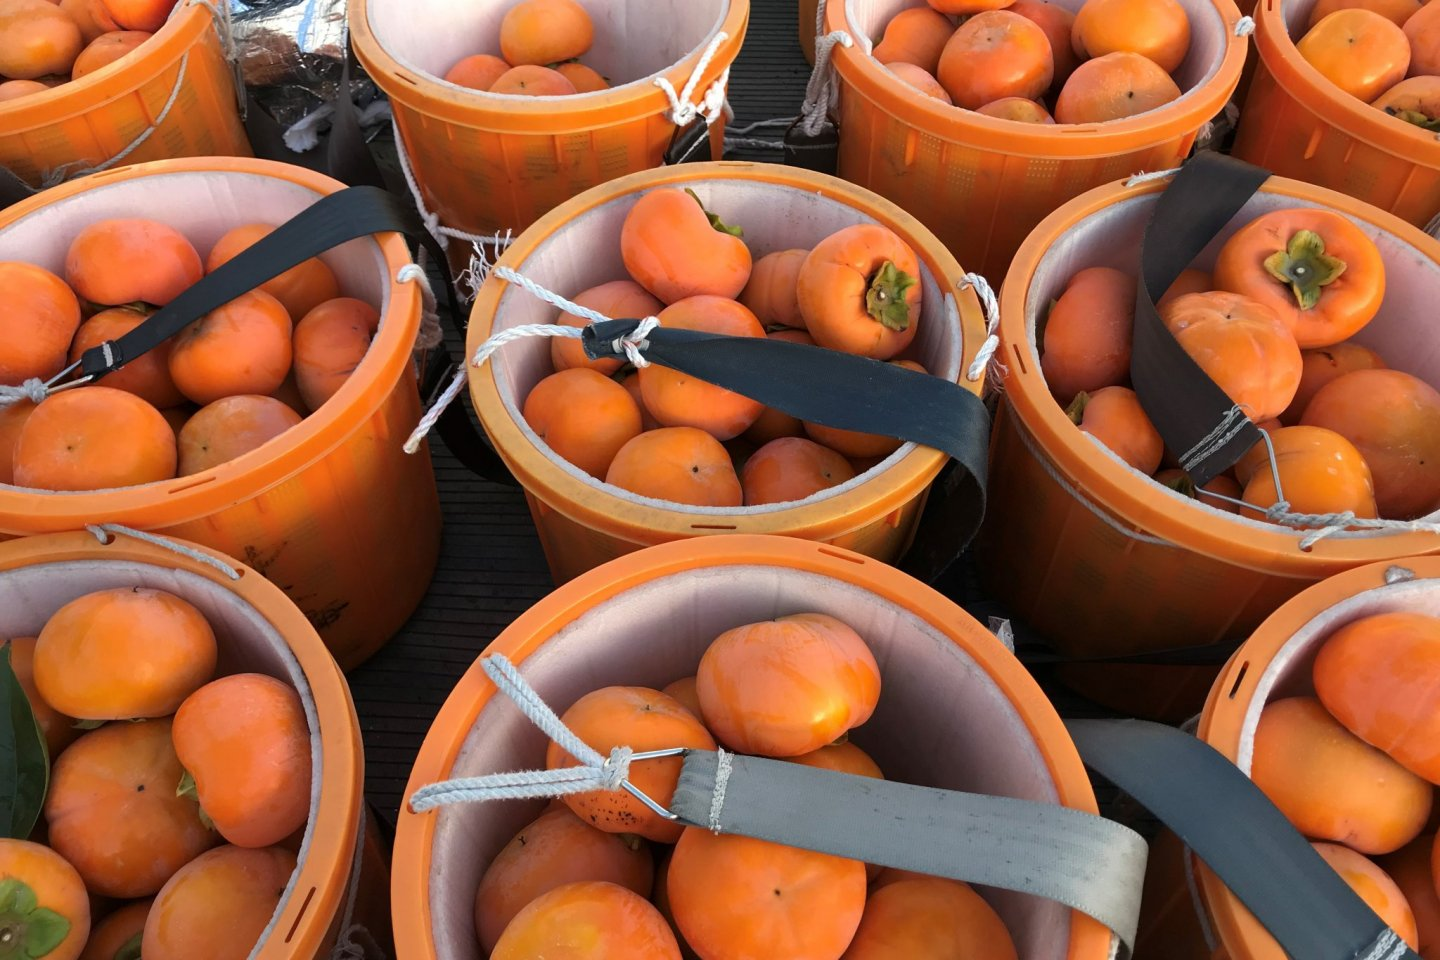 Buckets full of perfect persimmon